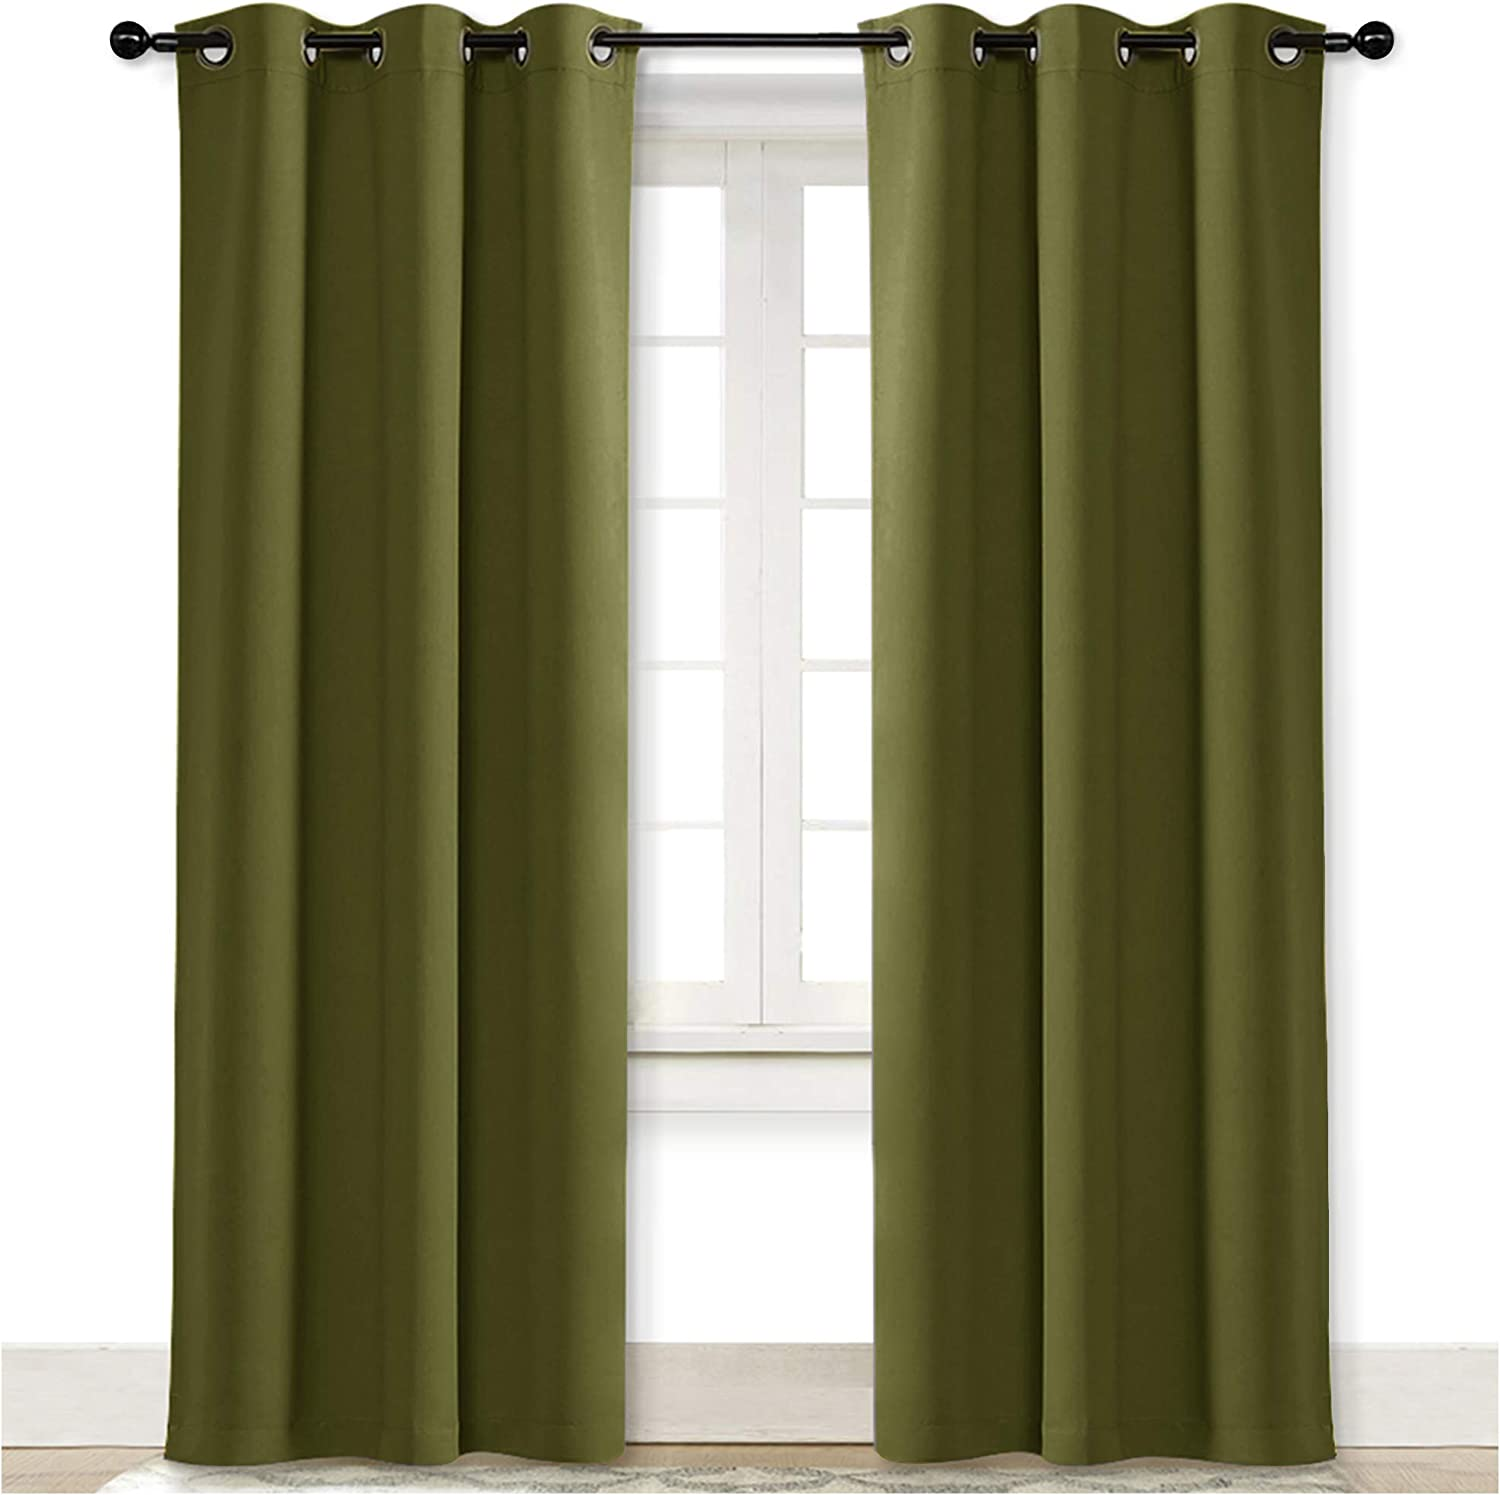 NICETOWN Blackout Room Darkening Window Curtain Thermal Insulated Solid Grommet Blackout Curtain/Drape for Living Room on Christmas & Thanksgiving (Single Panel, 42 by 84 inches, Olive Green)